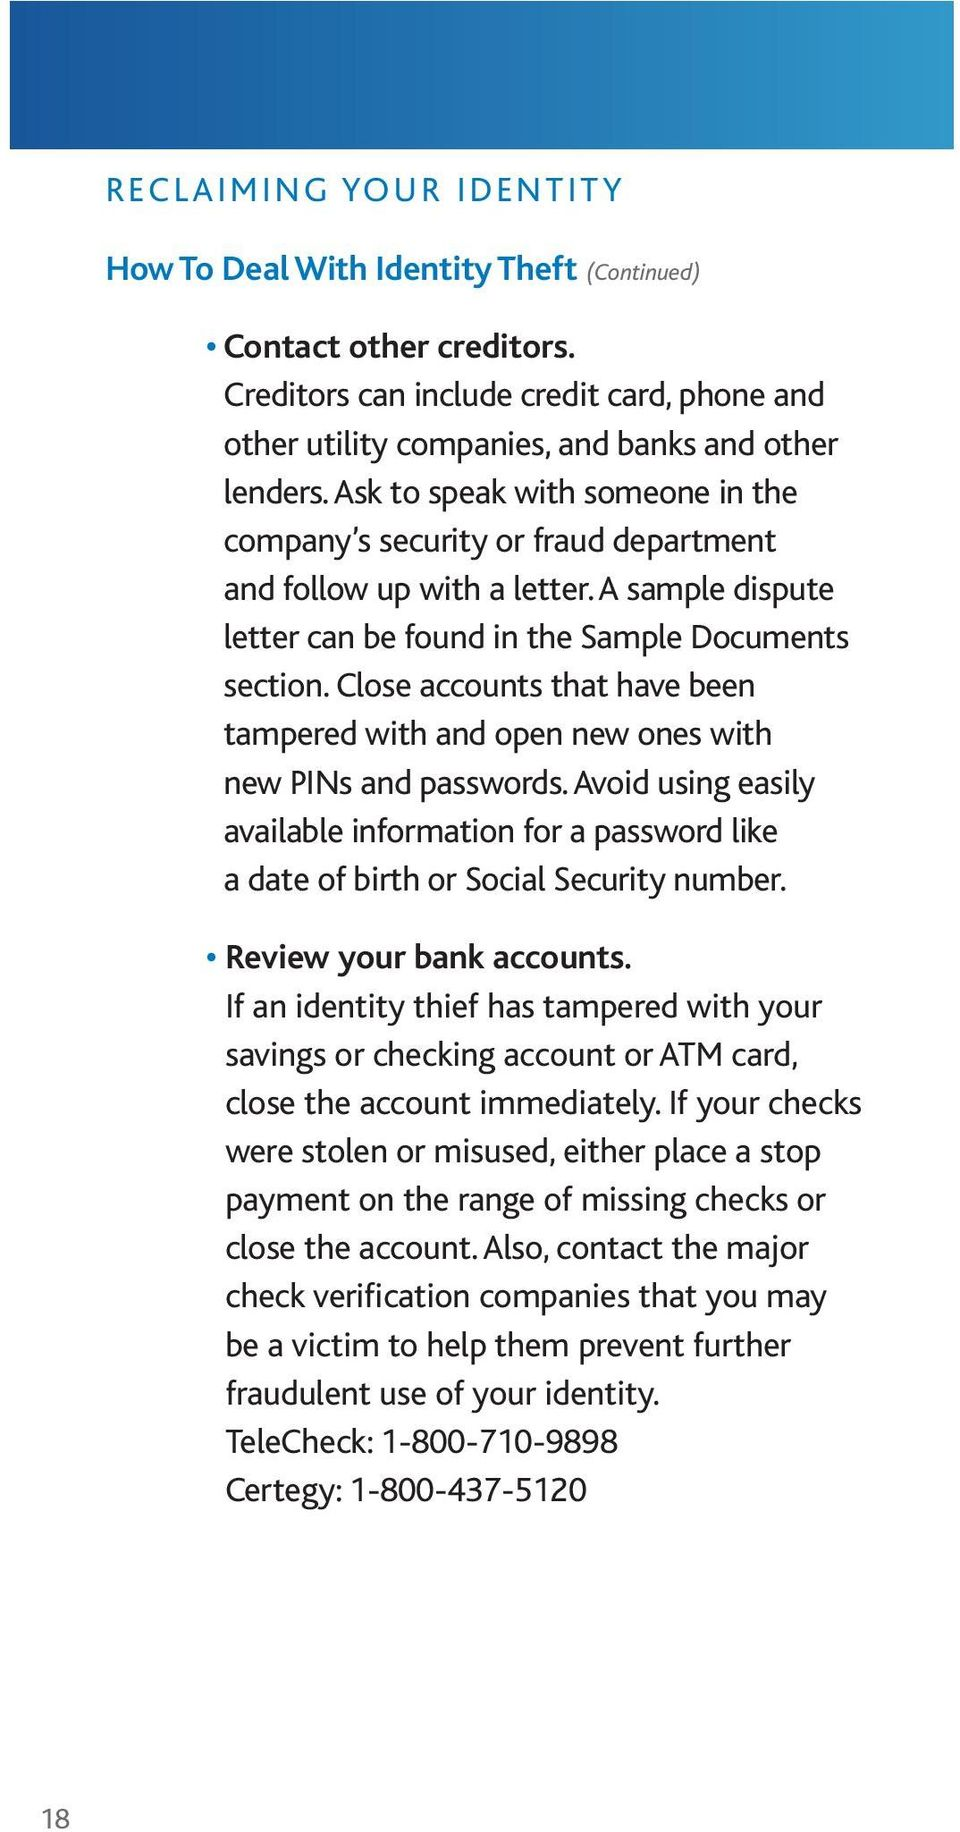 Close accounts that have been tampered with and open new ones with new PINs and passwords. Avoid using easily available information for a password like a date of birth or Social Security number.